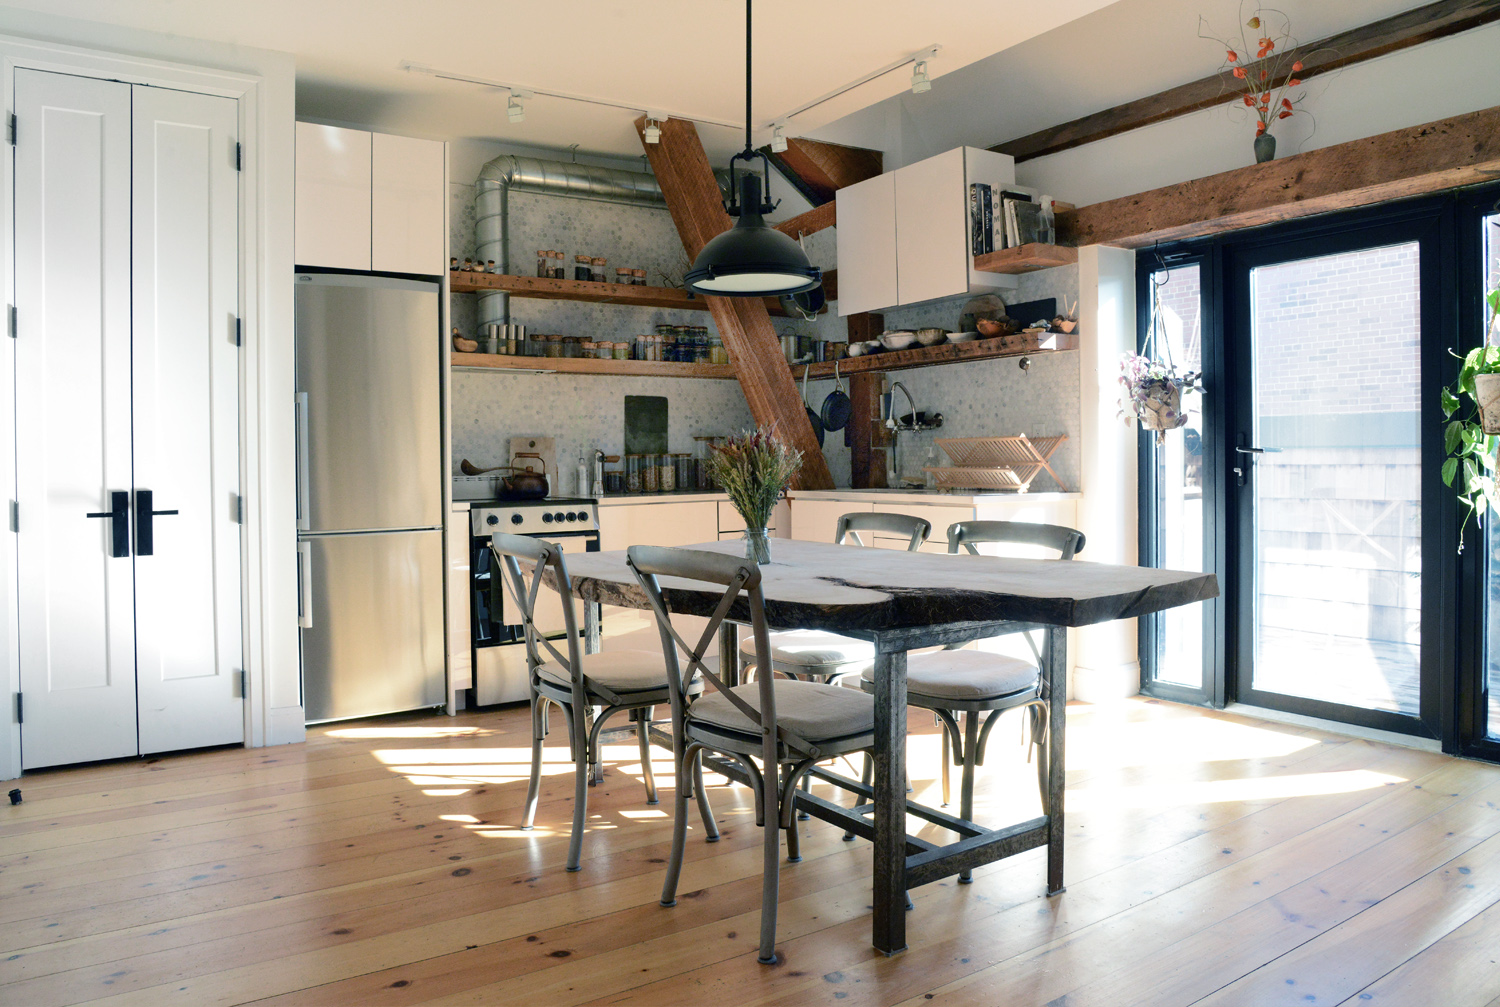 an apartment sanctuary offers complete visual, audible, and energetic isolation in the center of the city